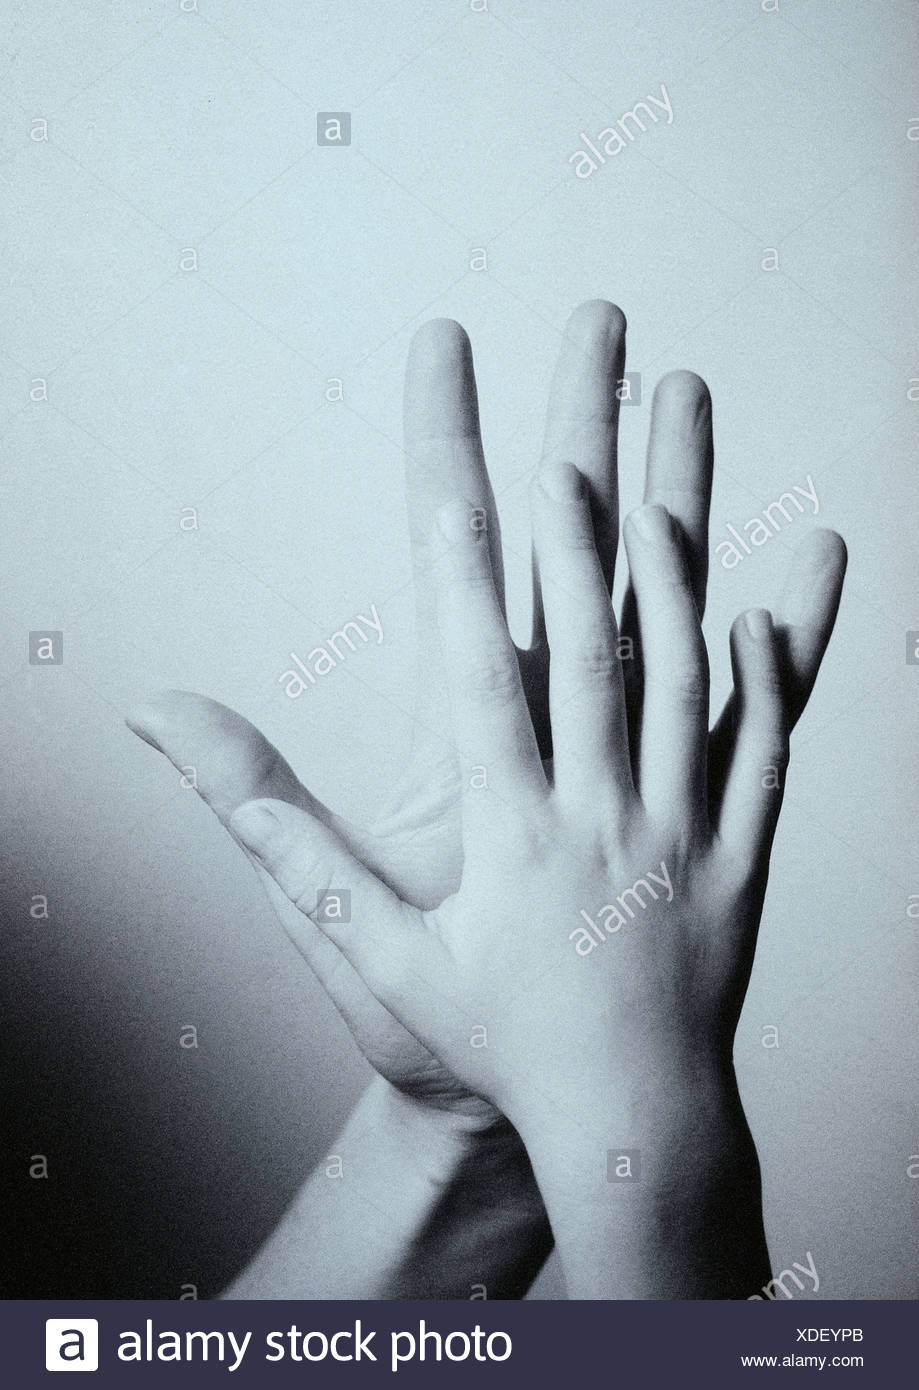 Child's hand touching man's hand, palm to palm, close-up - Stock Image